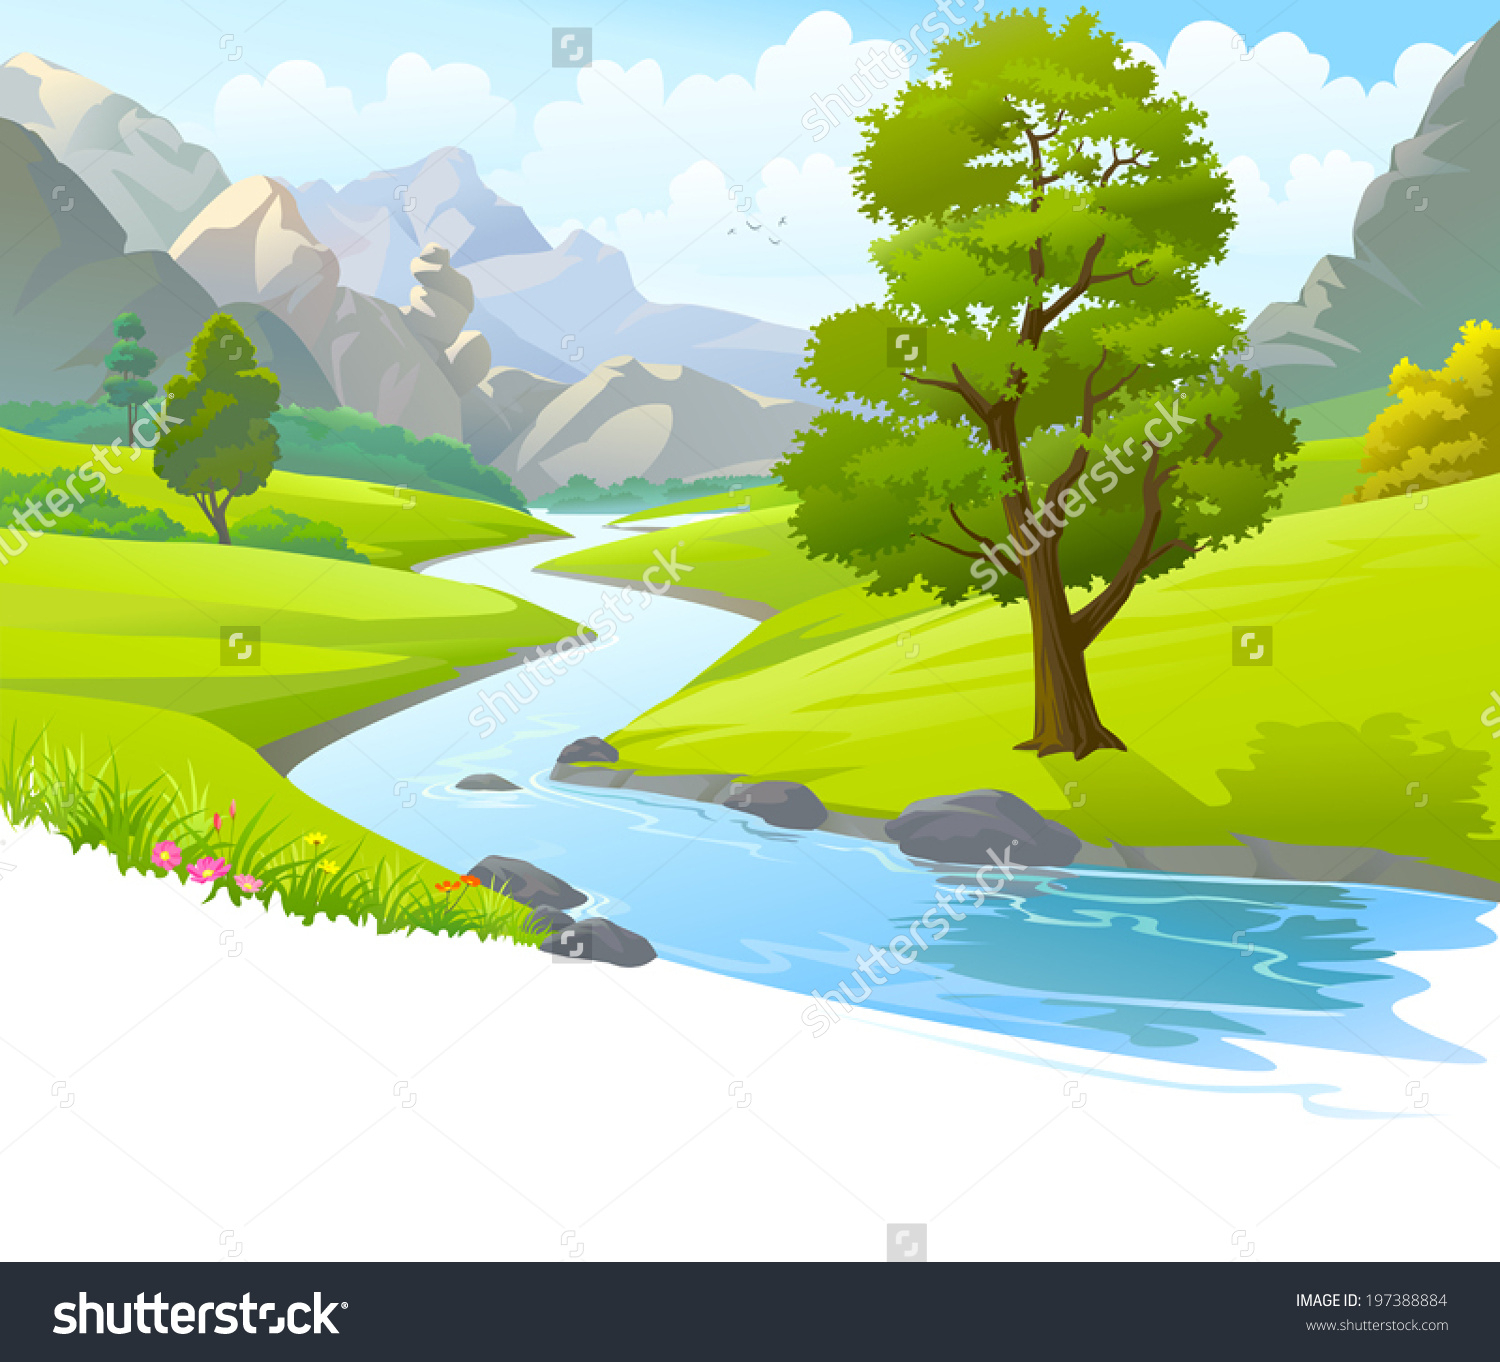 river drawing at getdrawings com free for personal use river rh getdrawings com river raft clipart clip art river rapids